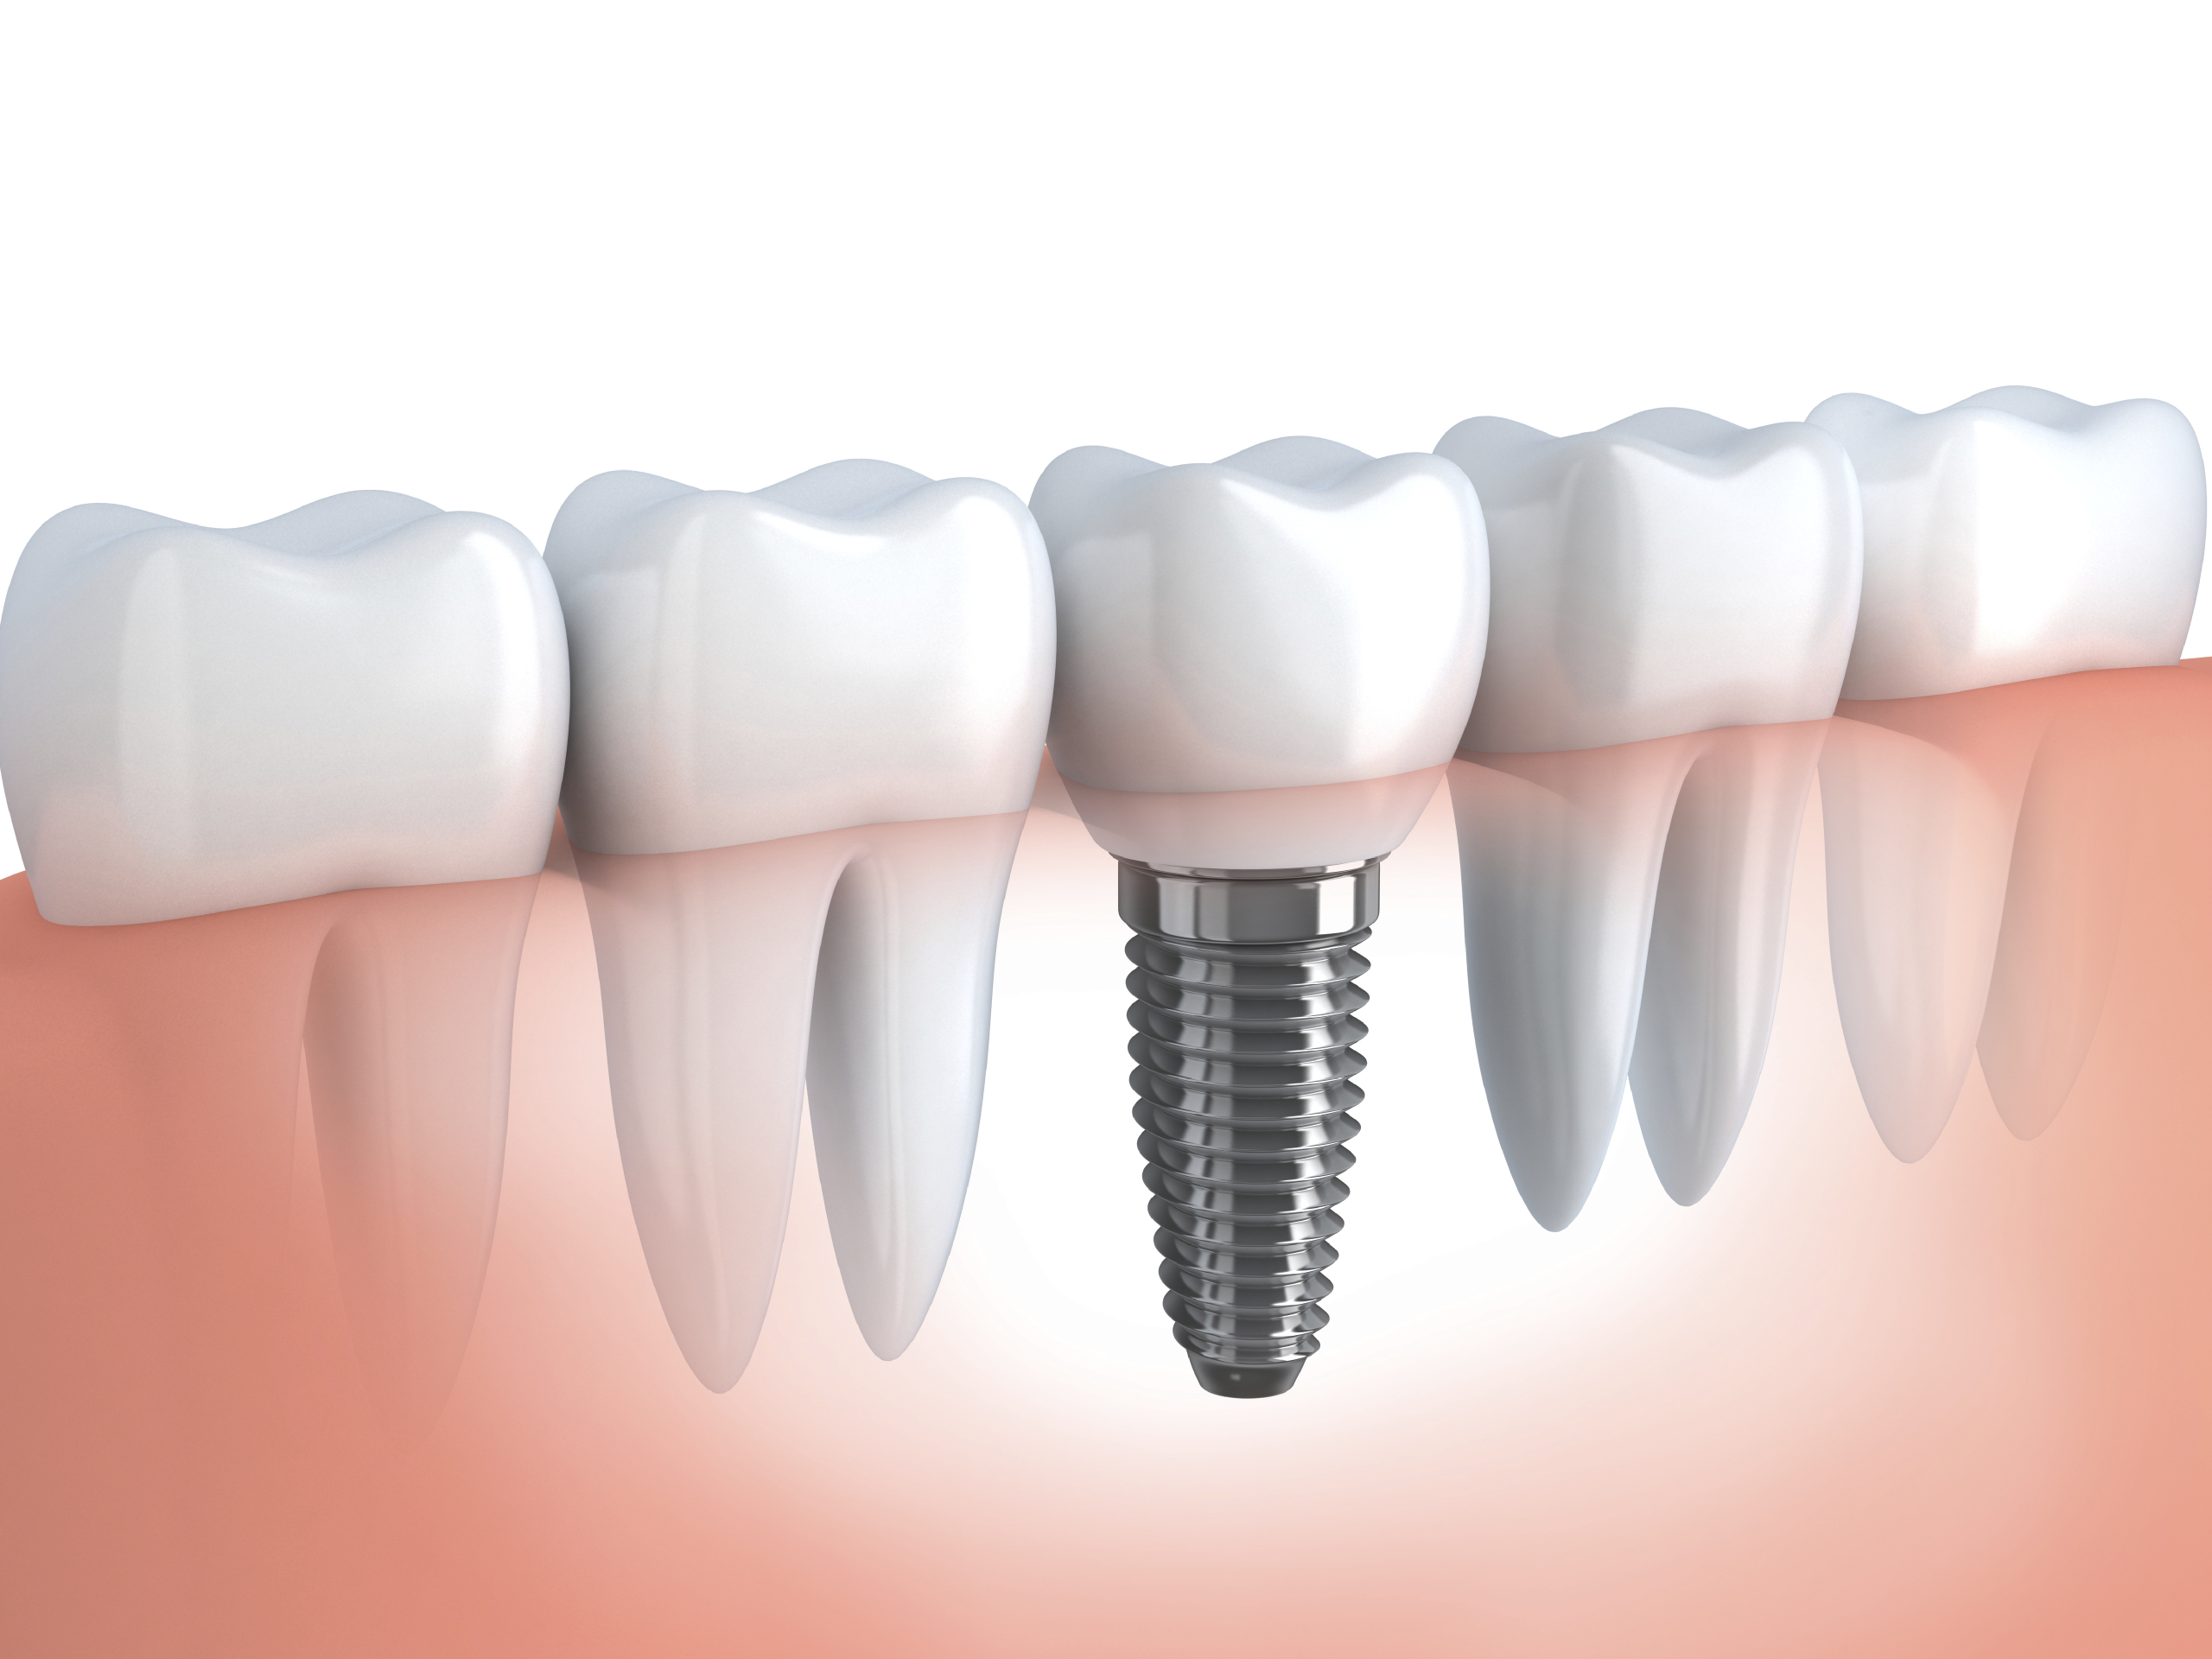 Dental Implant Procedure and Cost - Dr B Doherty